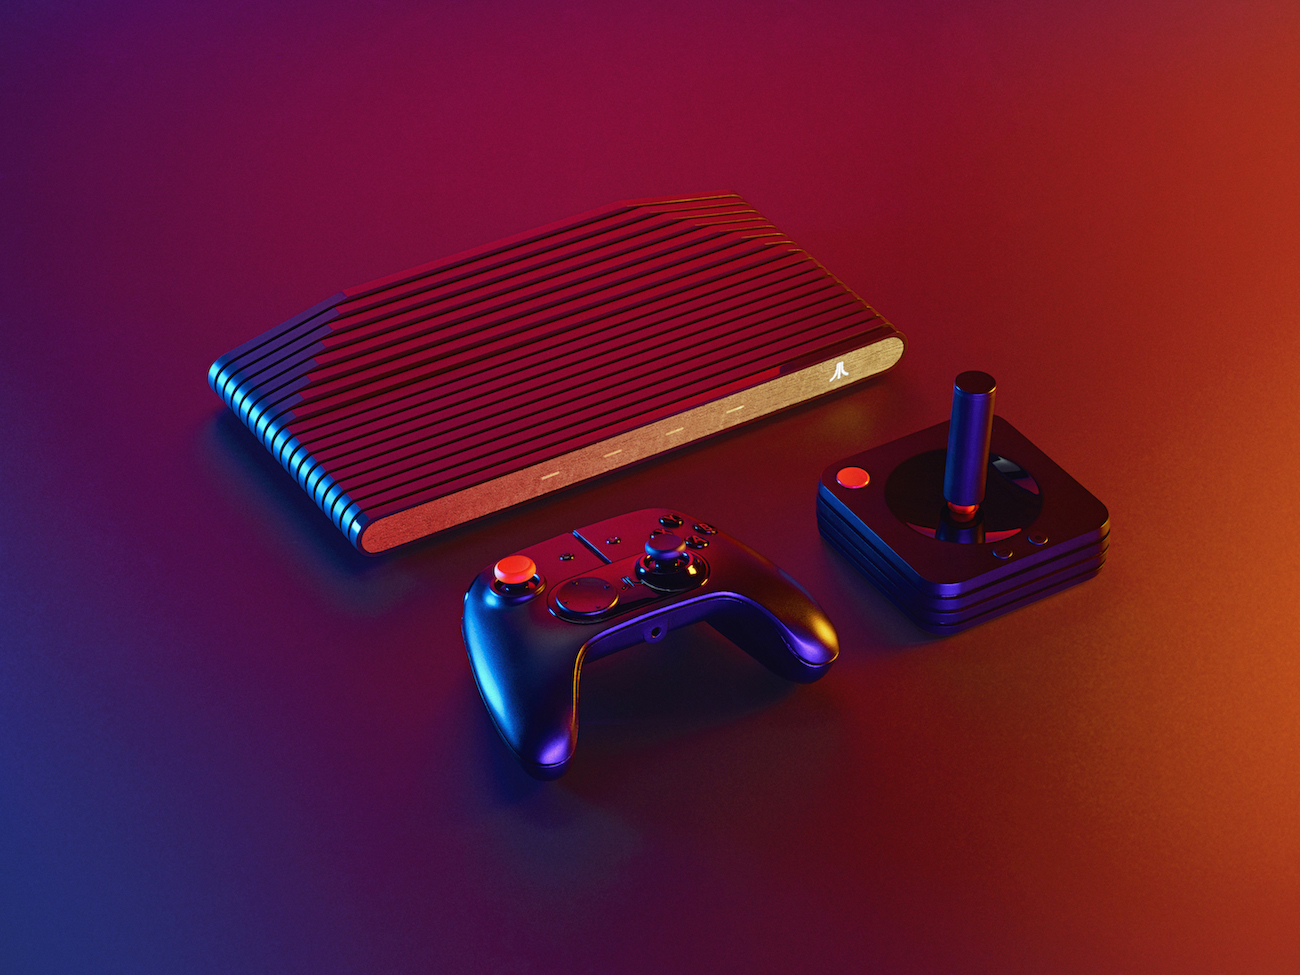 q05162018_Atari_Stylized_GROUP_STACKED_03_FINAL